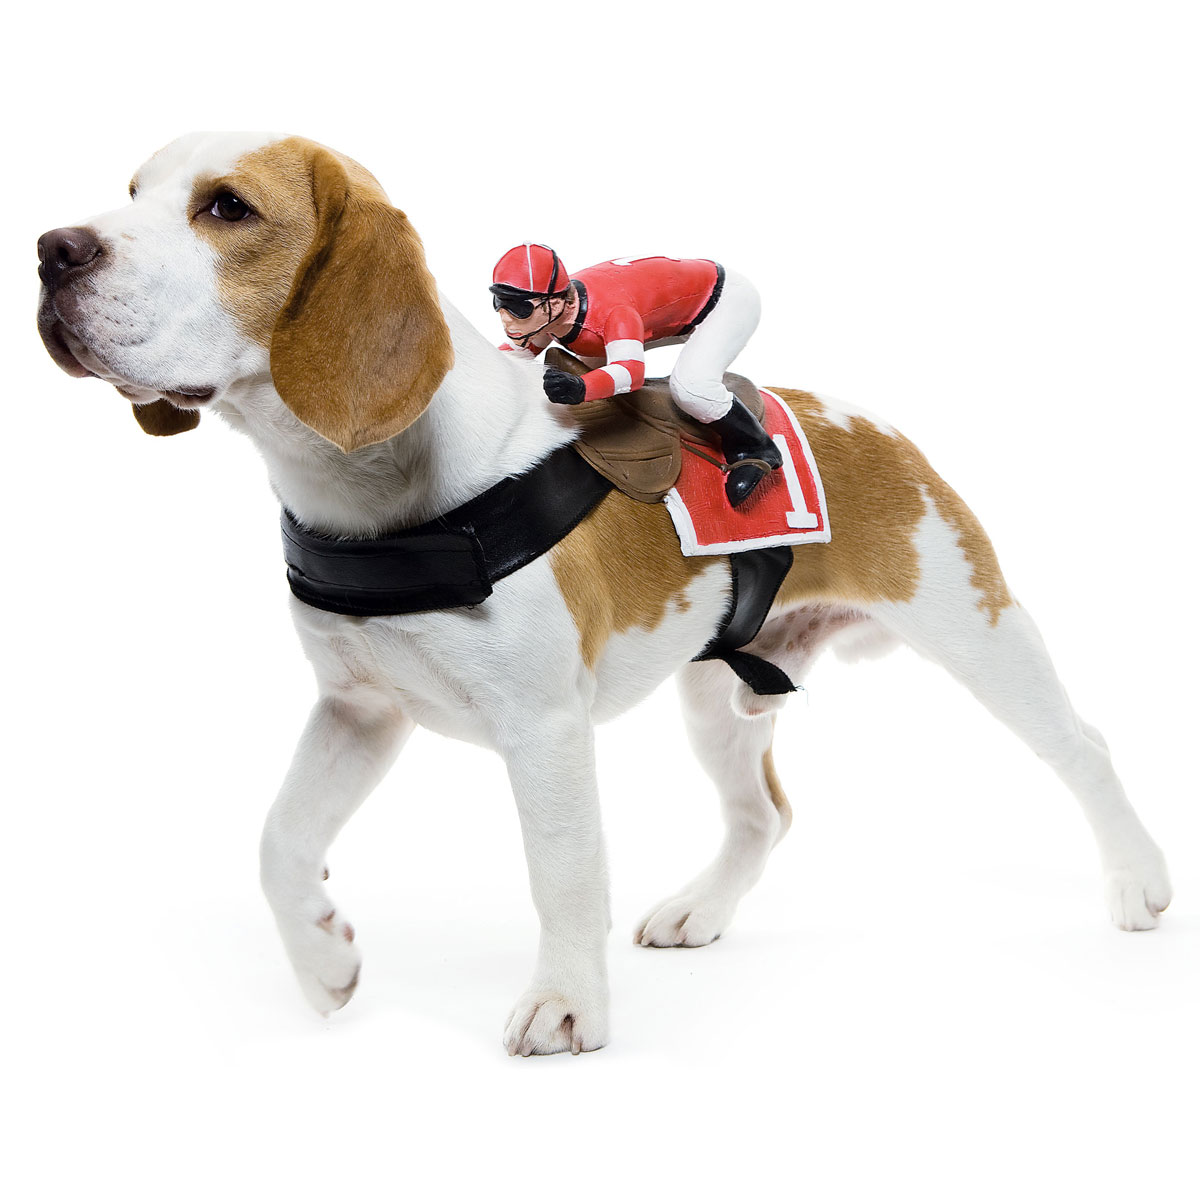 dog horse racing halloween costume - Dogs With Halloween Costumes On